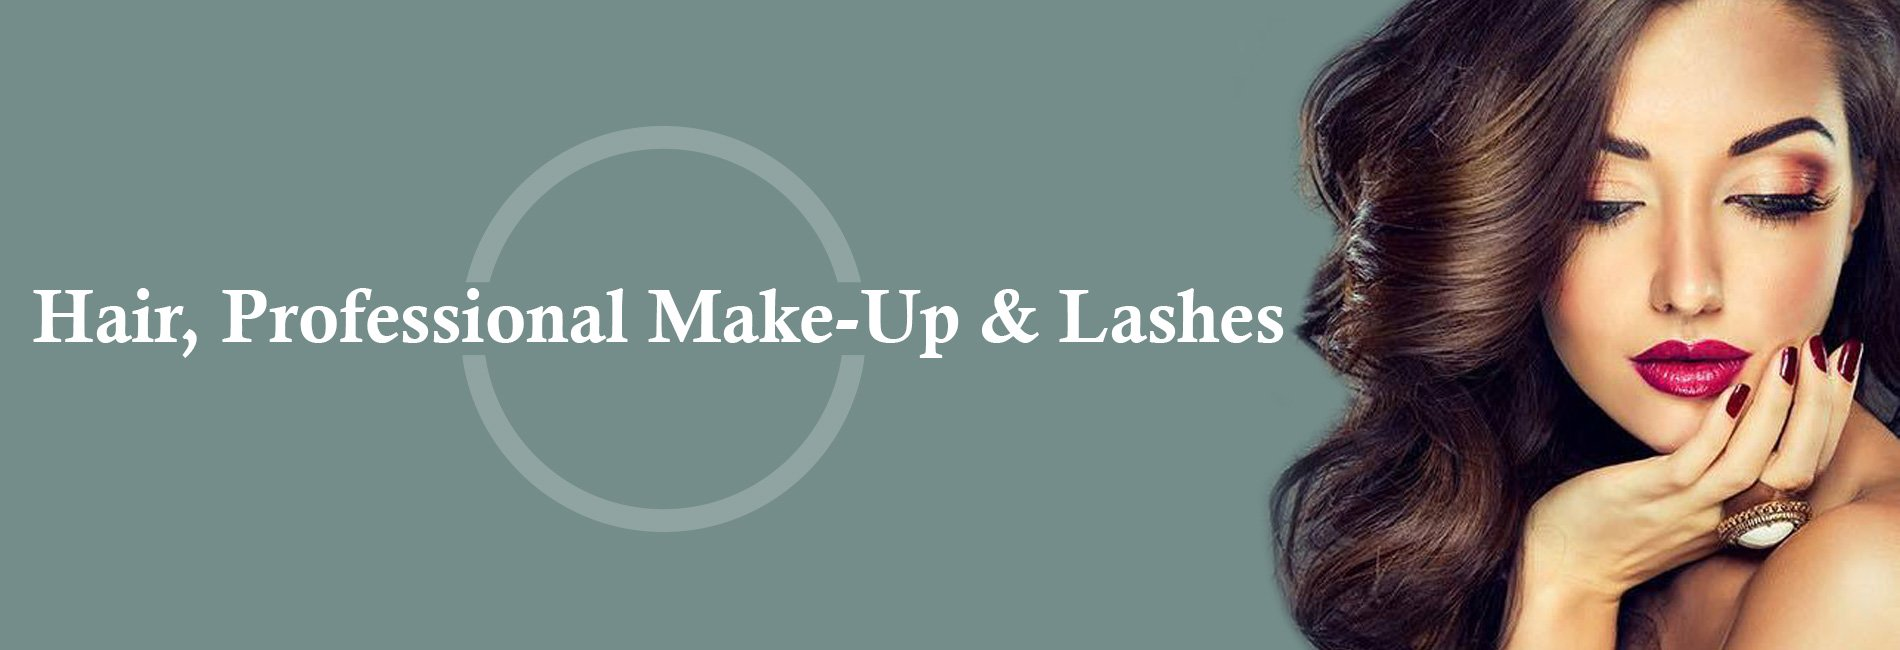 Hair Professional Make Up Lashes